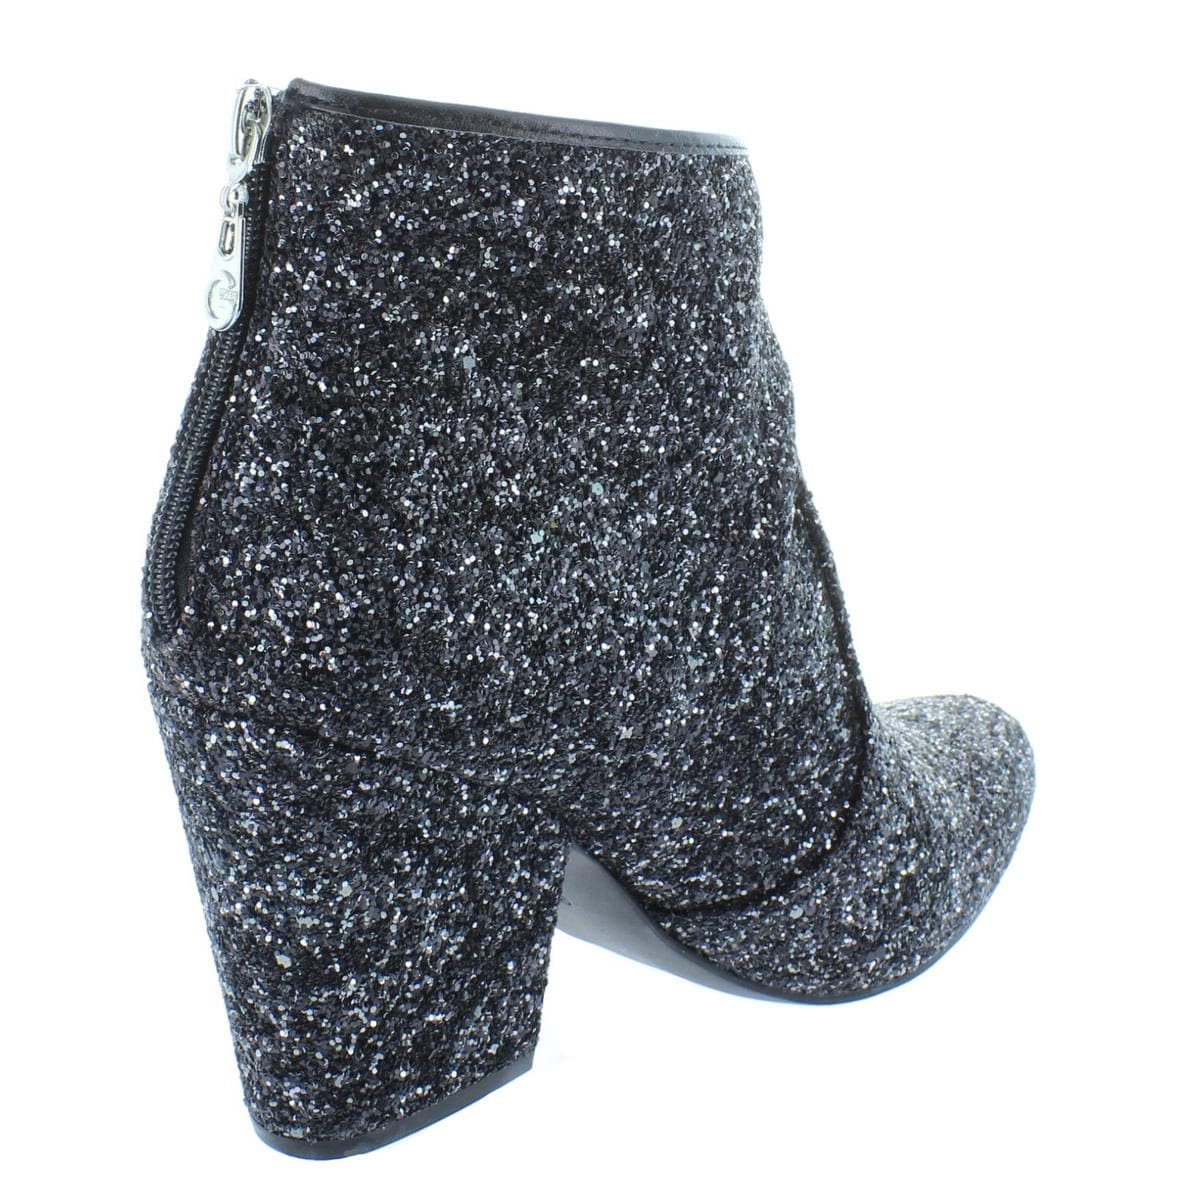 b737f584c547 Shop G by Guess Womens Nite3 Booties Glitter Textured Block Heels - Free  Shipping On Orders Over  45 - Overstock - 25441891